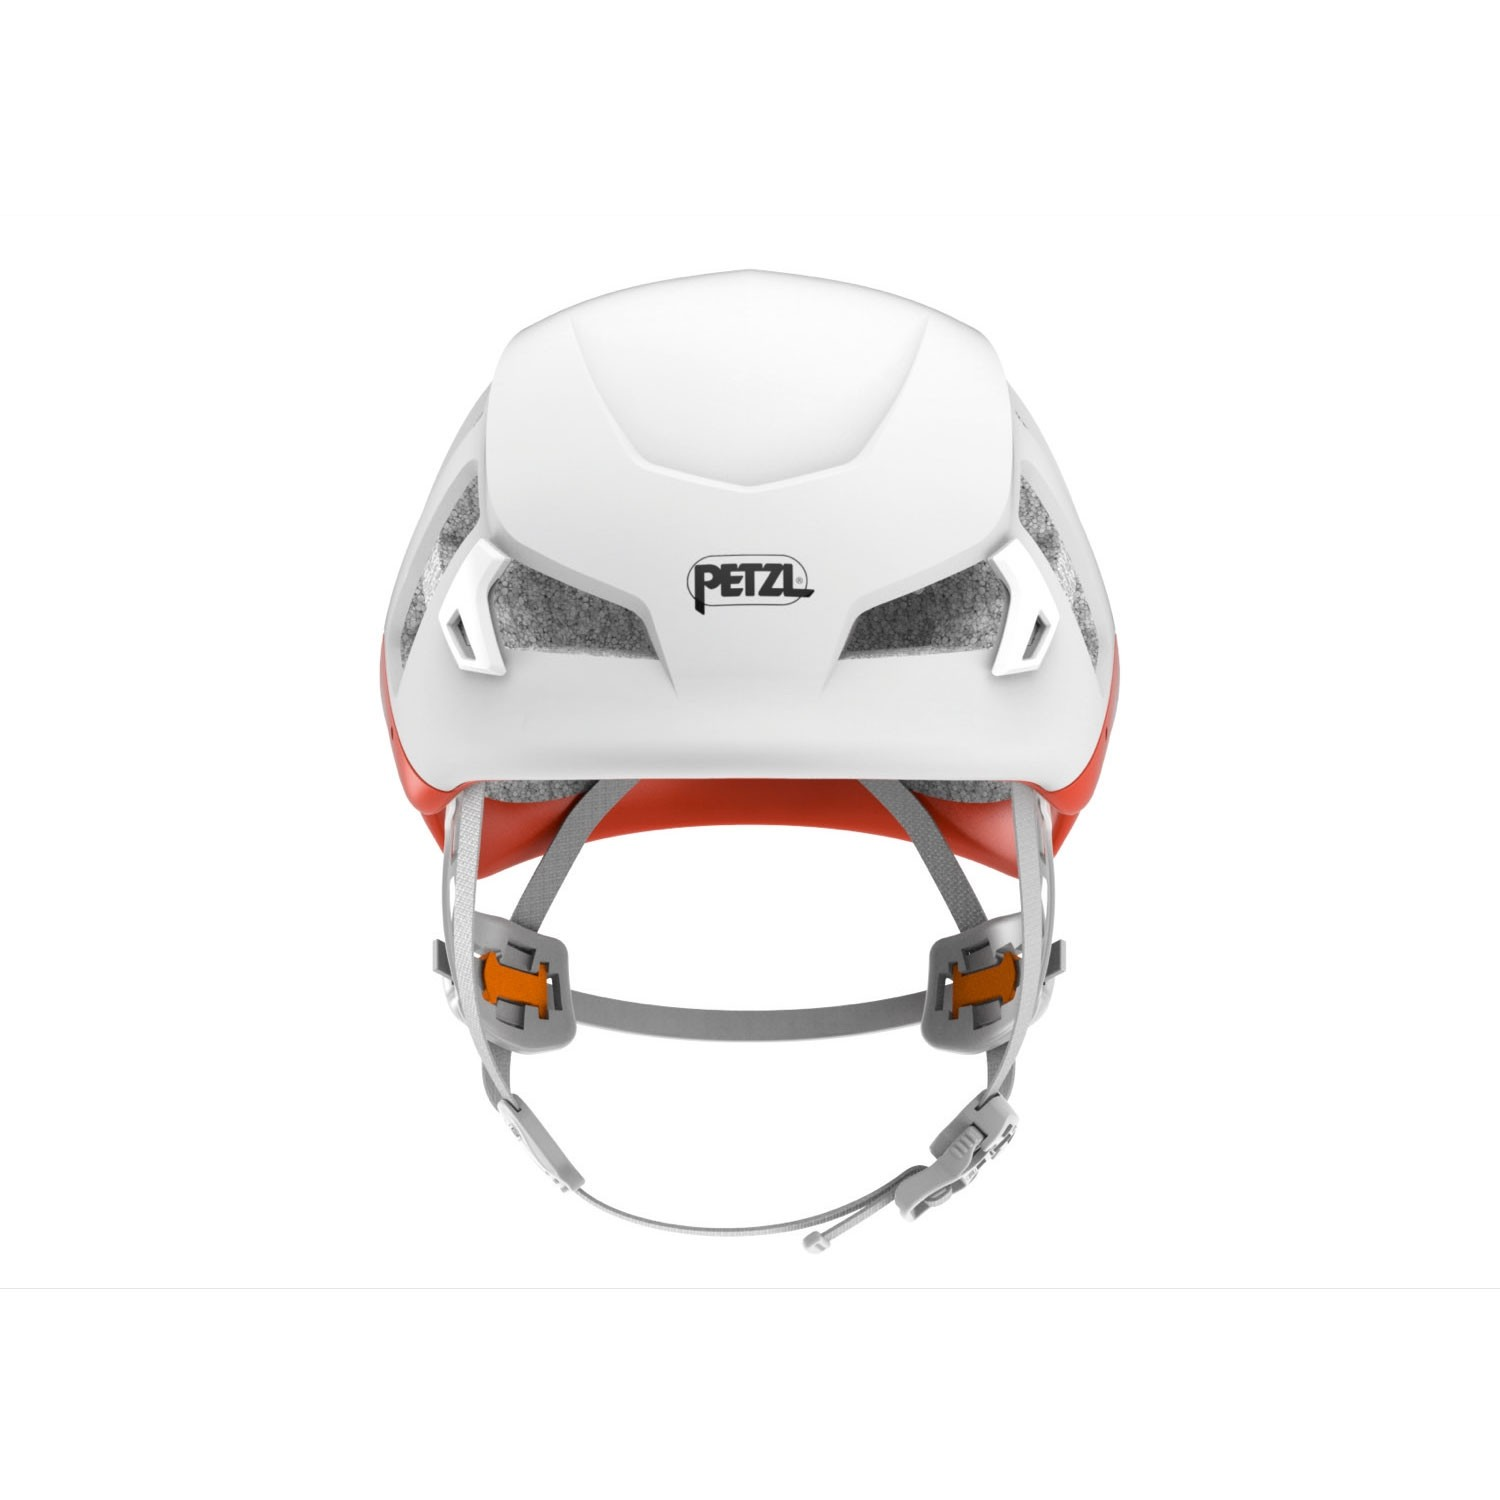 Petzl Meteor Climbing Helmet - Red/Orange - front